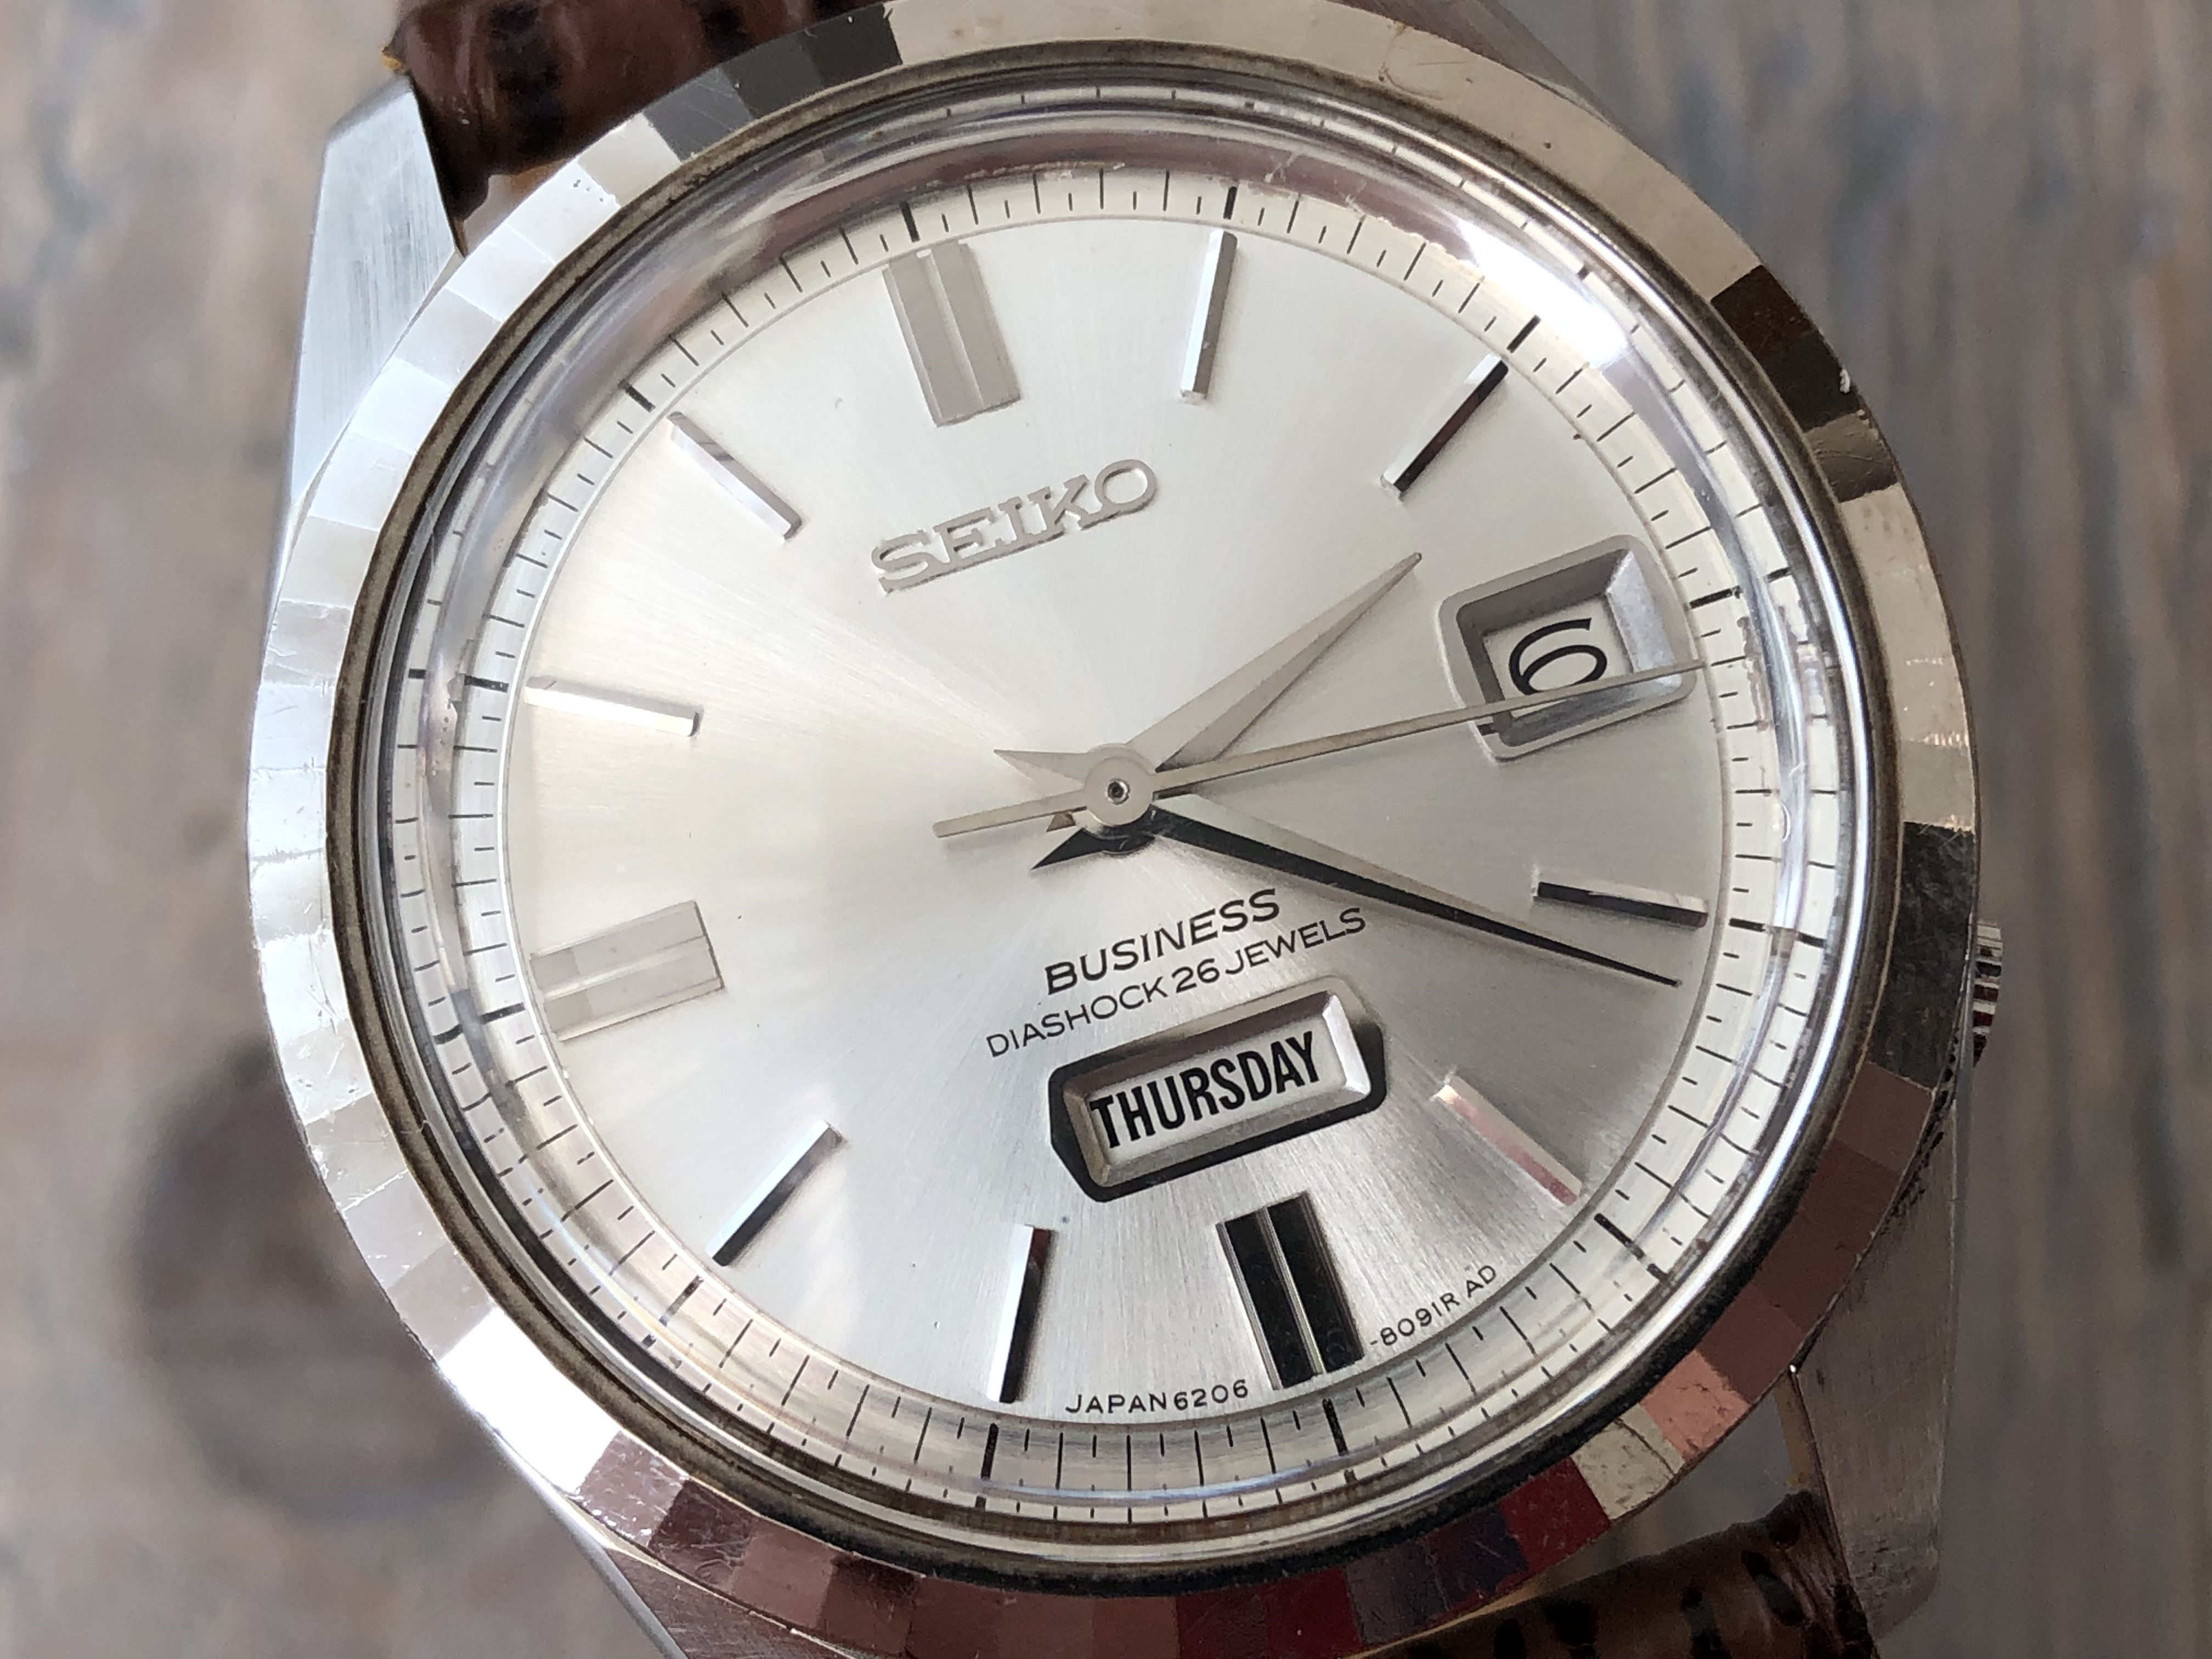 Seiko Business 6206-8100 (Sold)